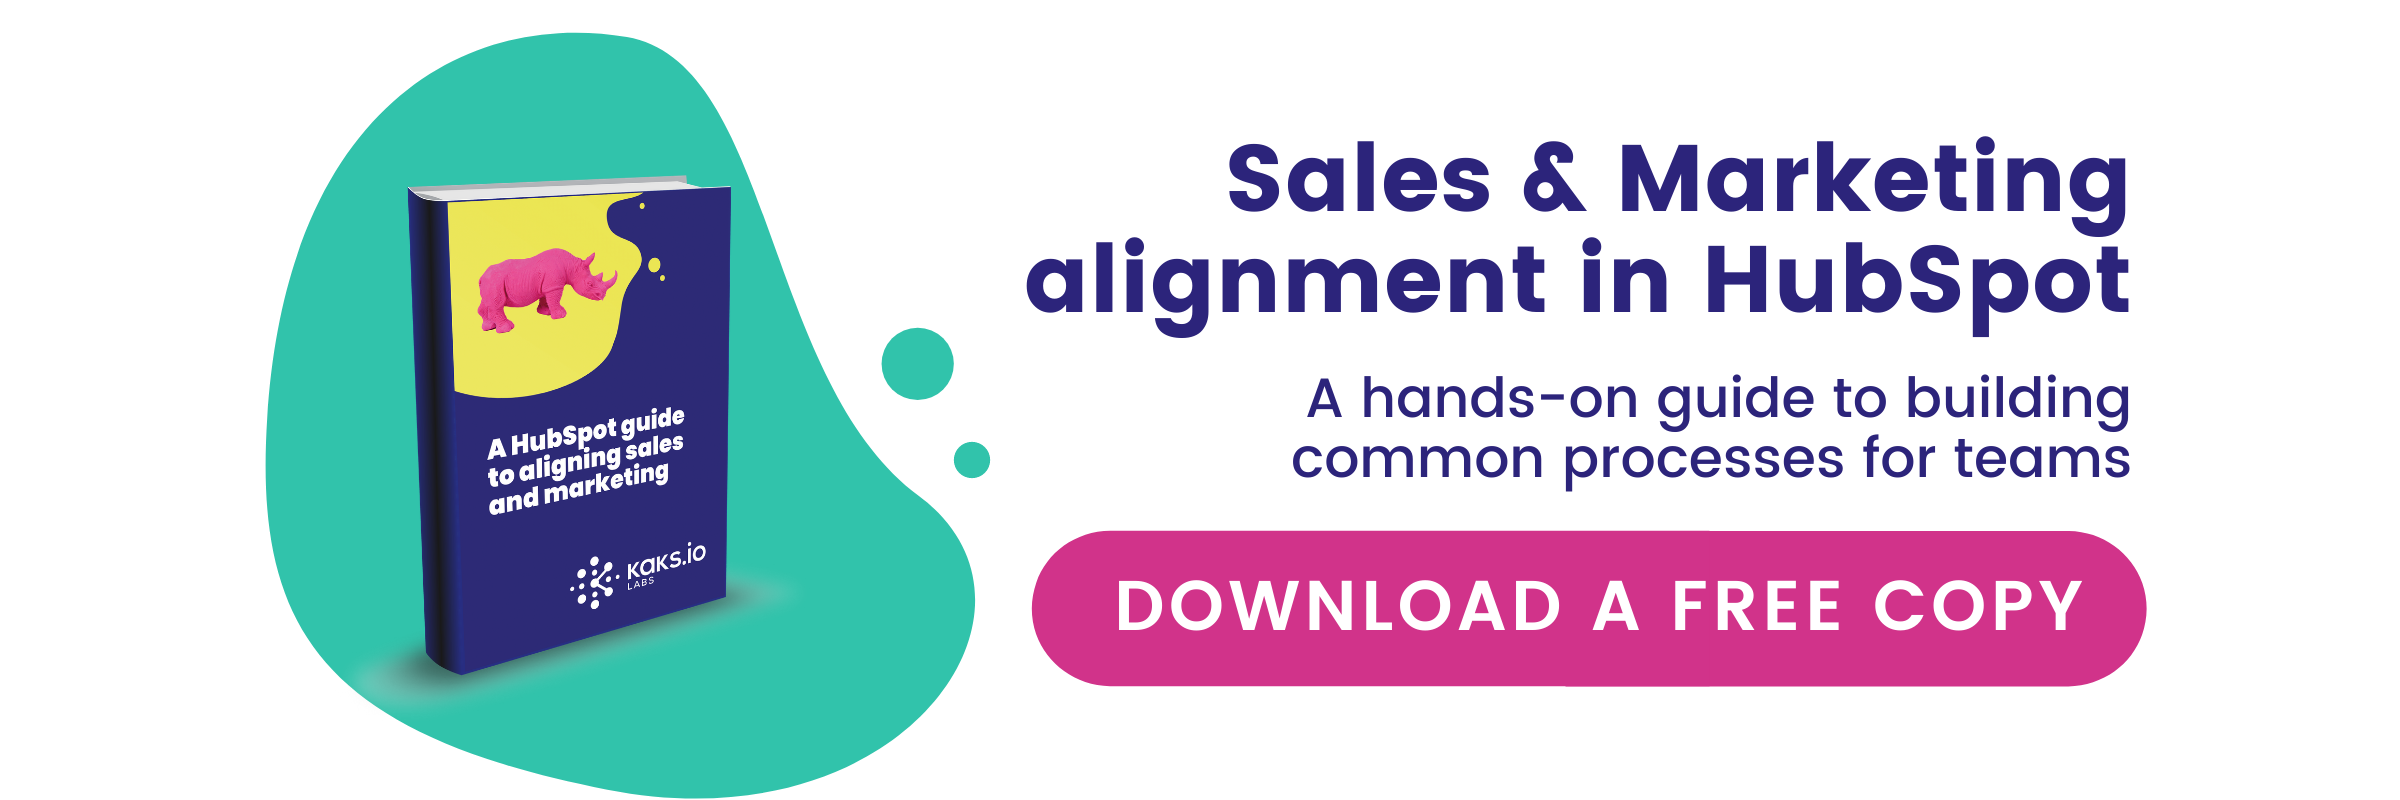 Sales and marketing alignment in HubSpot free guide